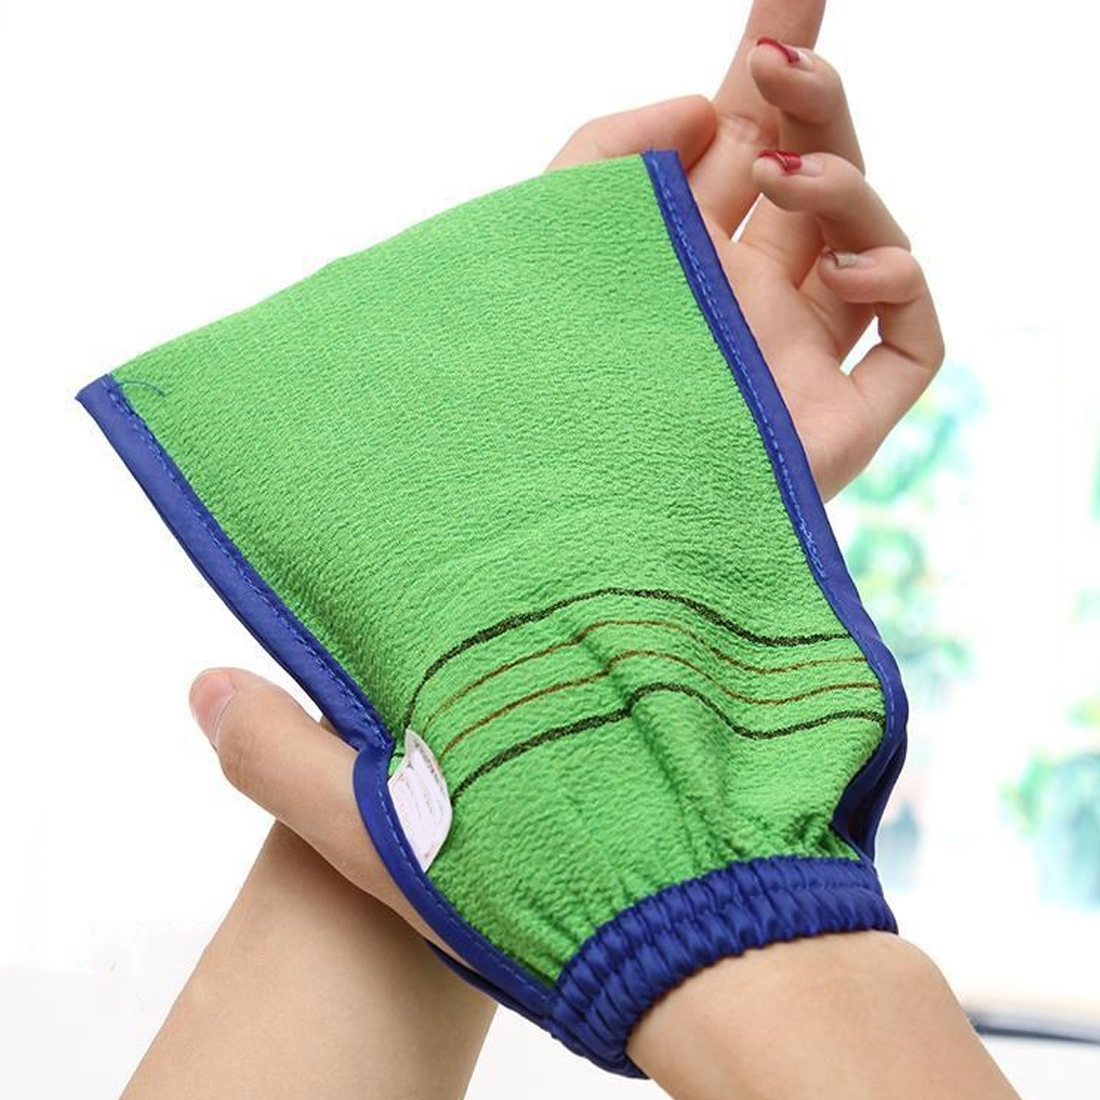 Hot Sale 1 PC Random Color Shower Spa Exfoliator Two-sided Bath Glove Body Cleaning Scrub Mitt Rub Dead Skin Removal